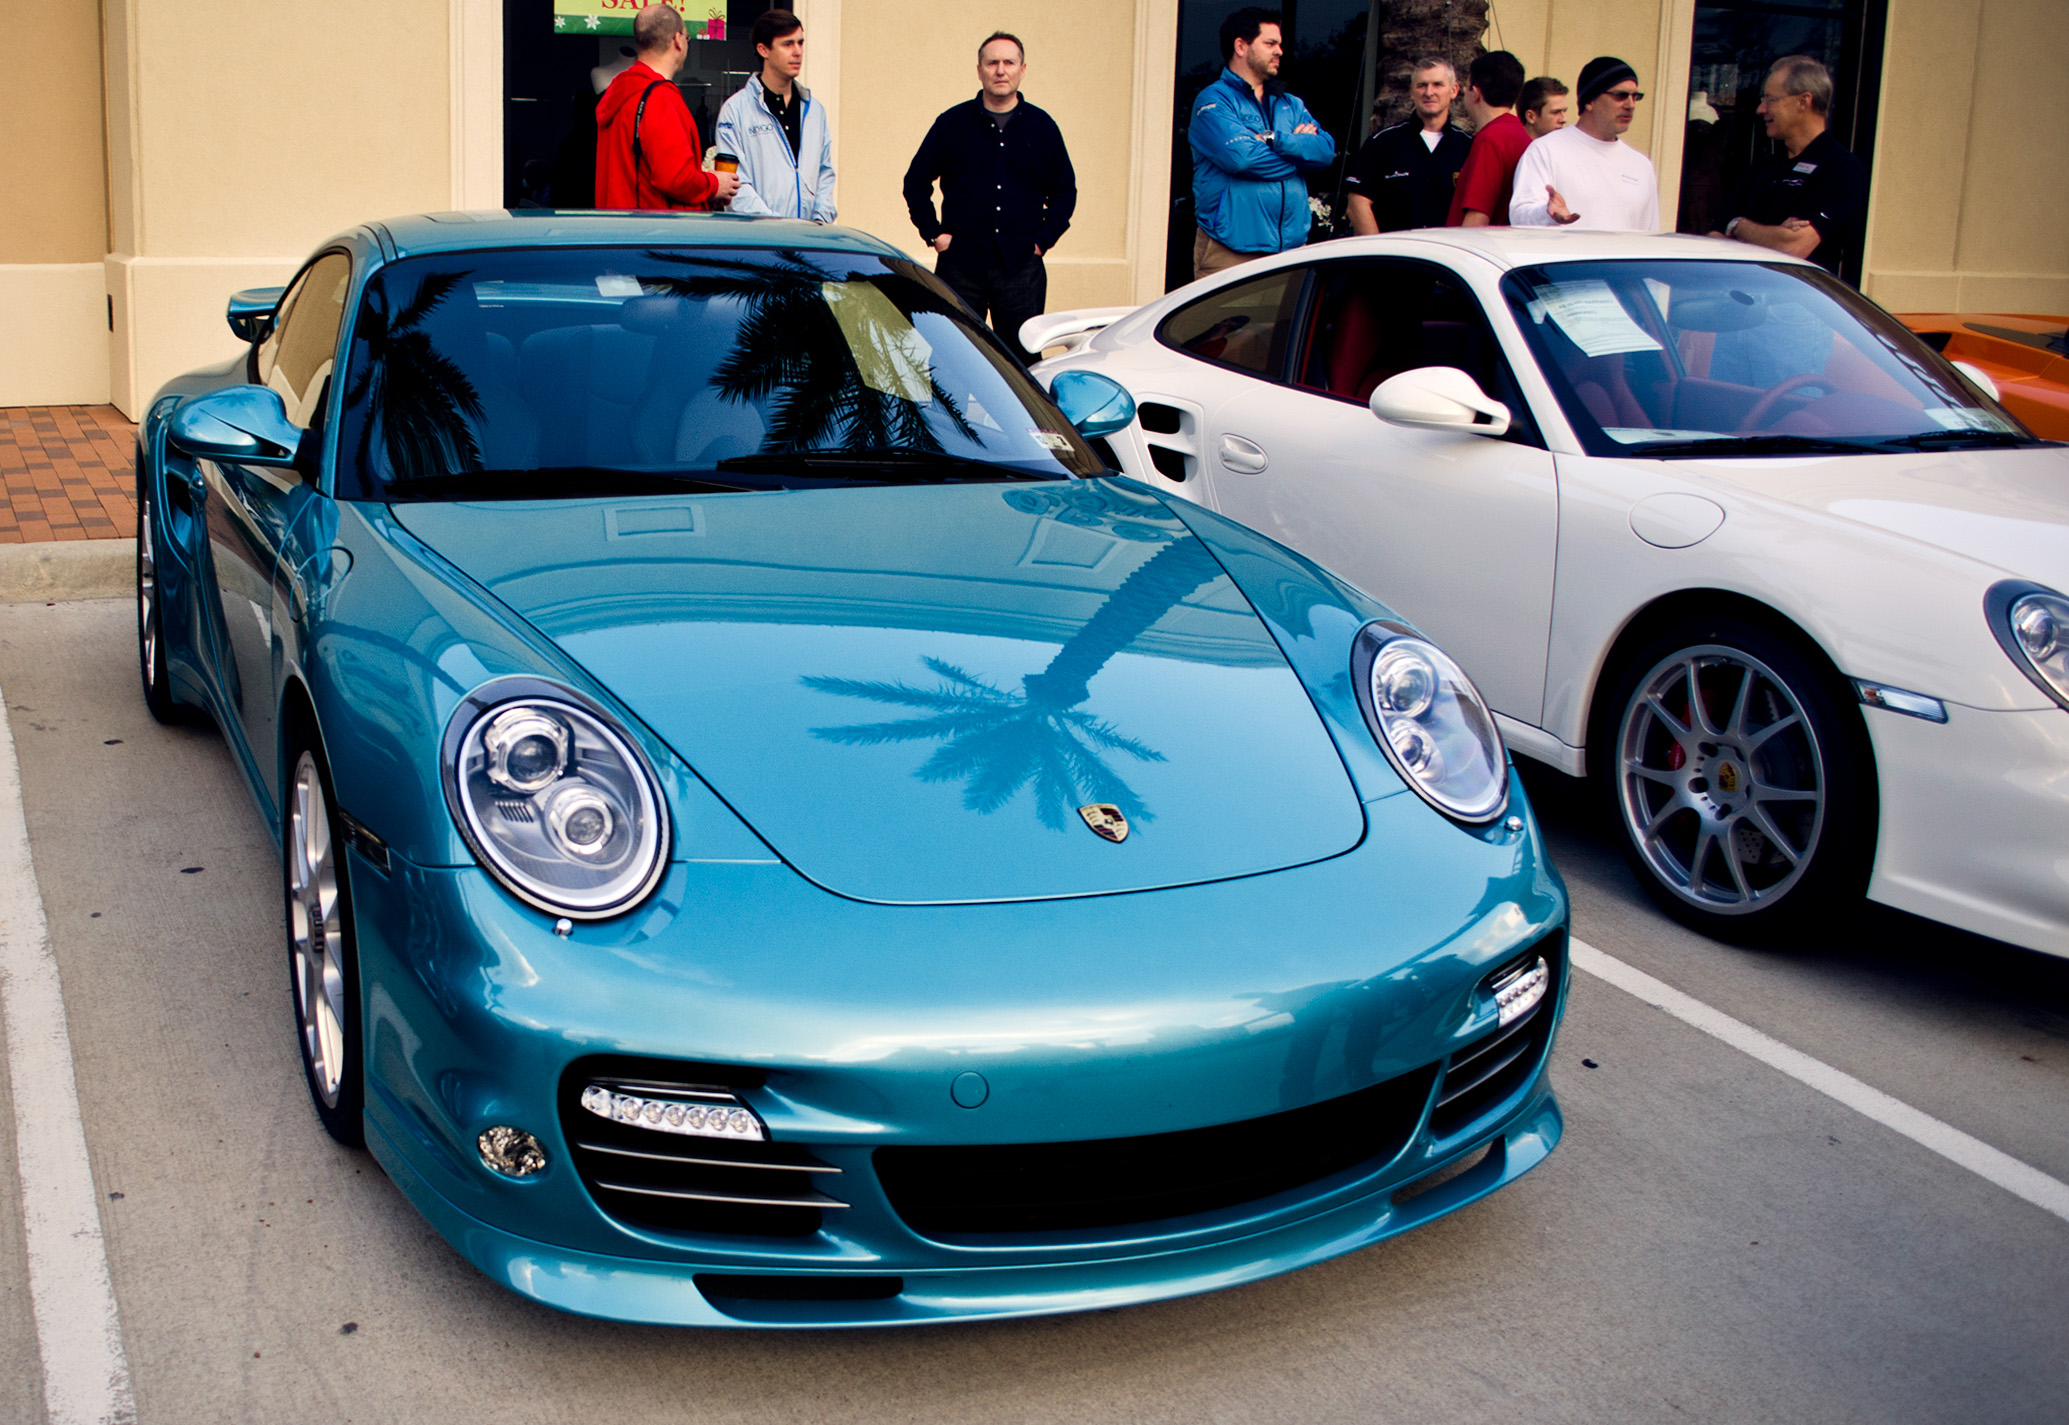 file 068 porsche 911 turbos flickr price photography